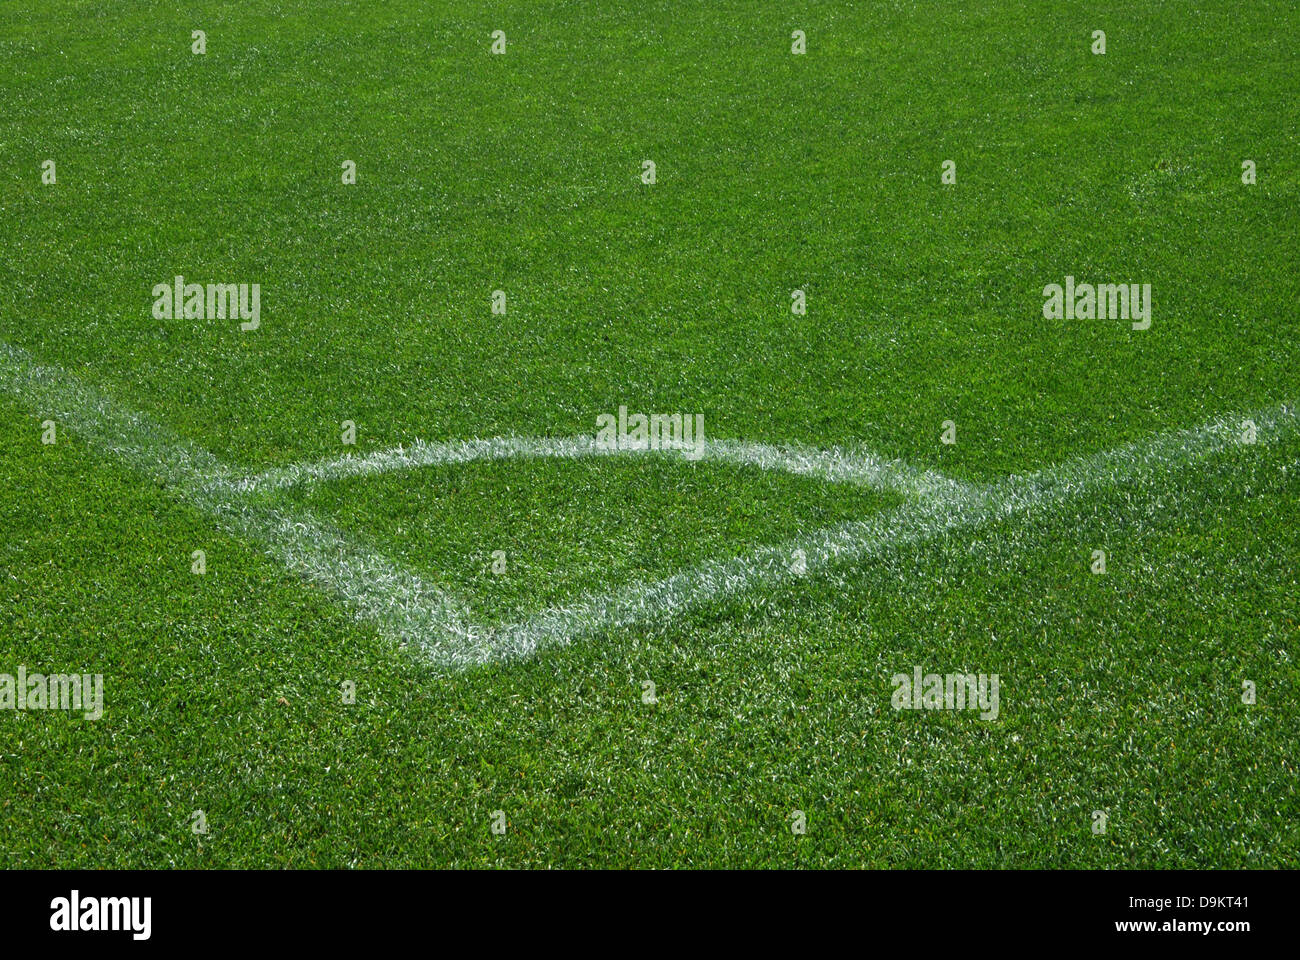 detail of lawn of Barcelona football stadium Spain - Stock Image